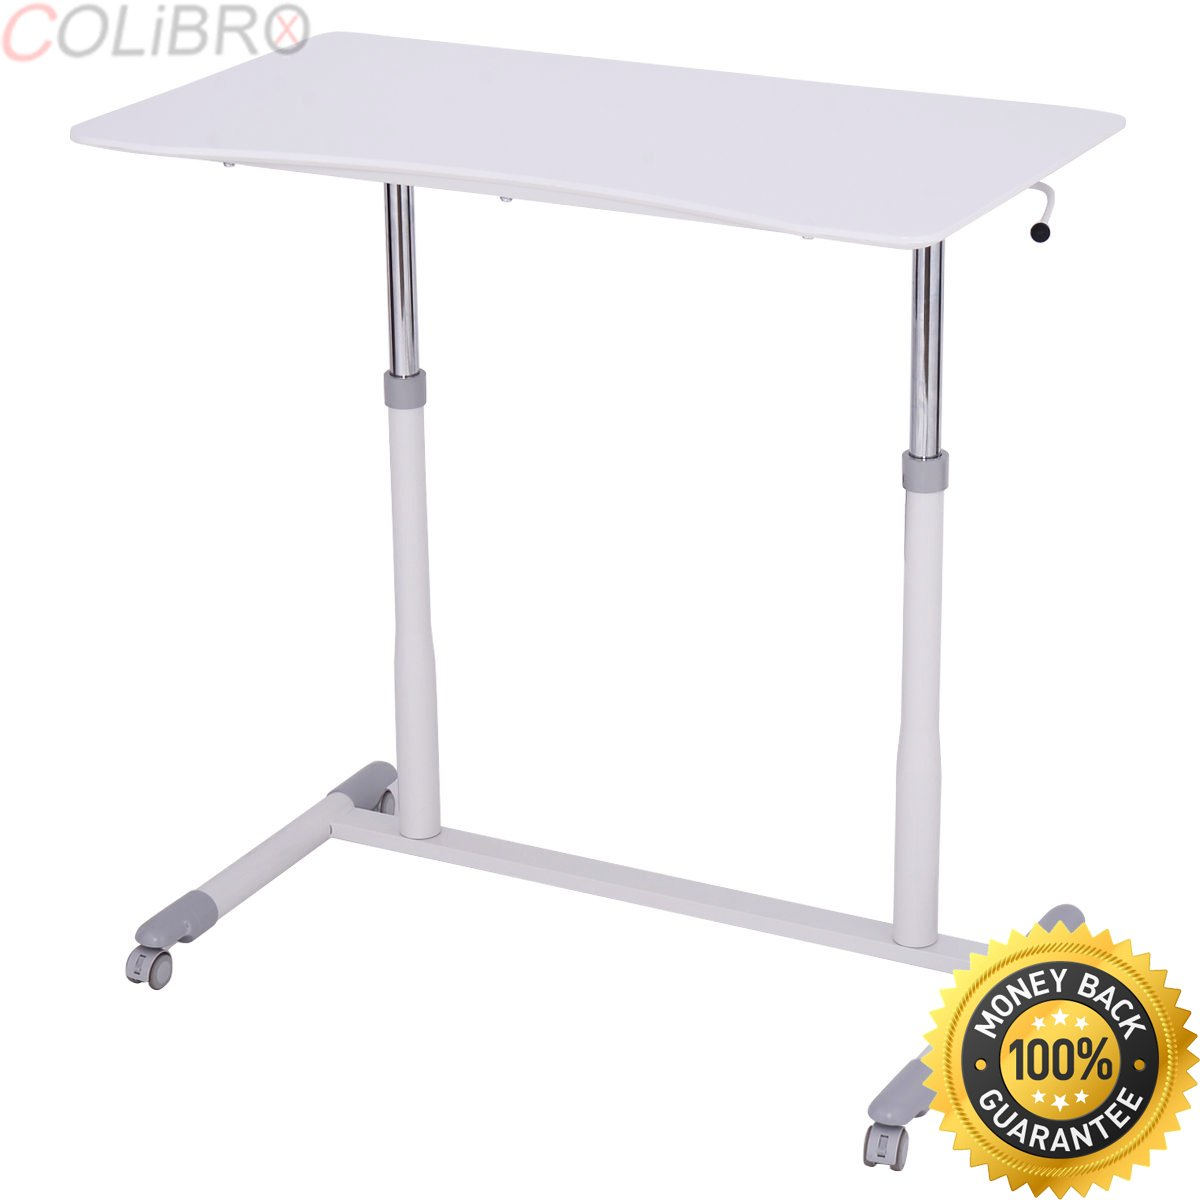 COLIBROX--Height Adjustable Computer Desk Sit to Stand Rolling Notebook Table Portable New. adjustable desktop. best adjustable height stand up desk. portable Notebook Table amazon.